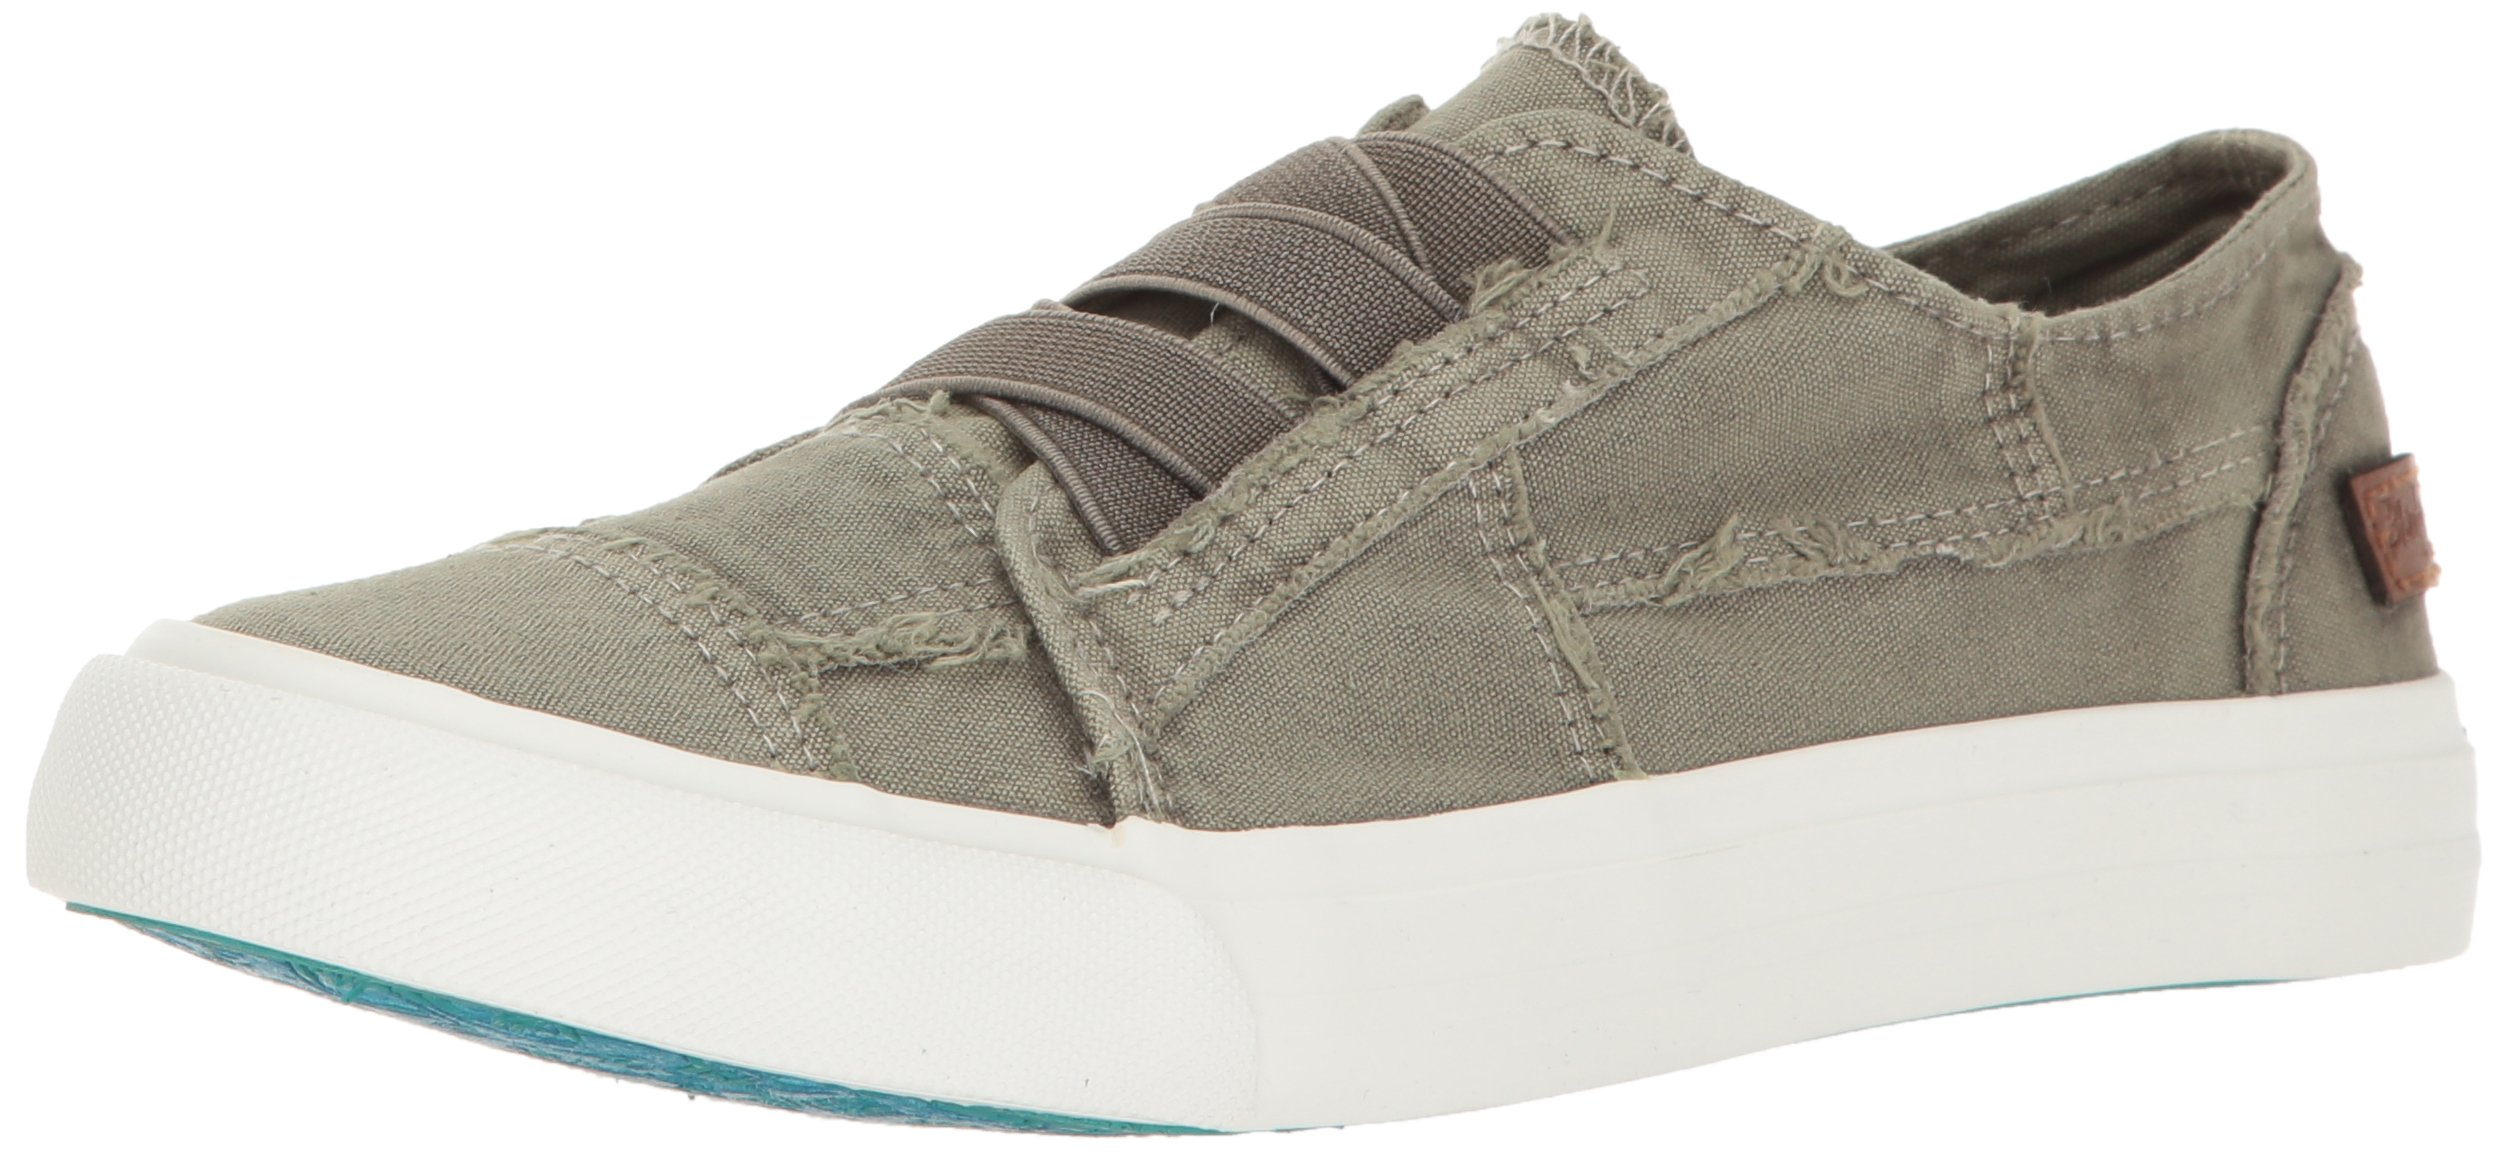 Blowfish Women's Marley Fashion Sneaker, Steel Grey Color Washed Canvas, 8.5 M US